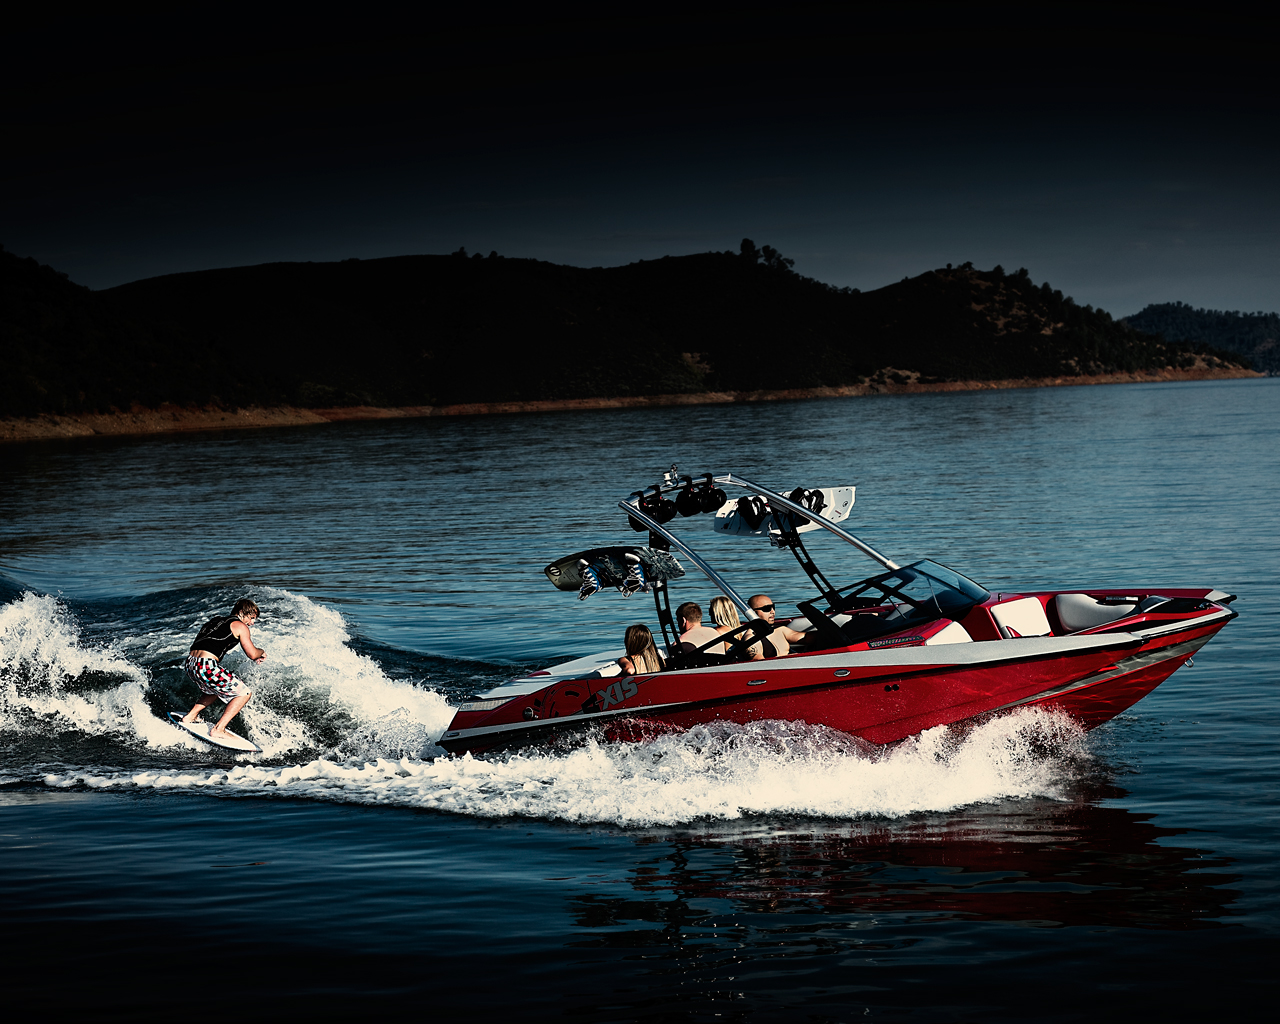 Axis Boats Wakeboard Boat Wallpapers Boat Buyers Guide 1280x1024